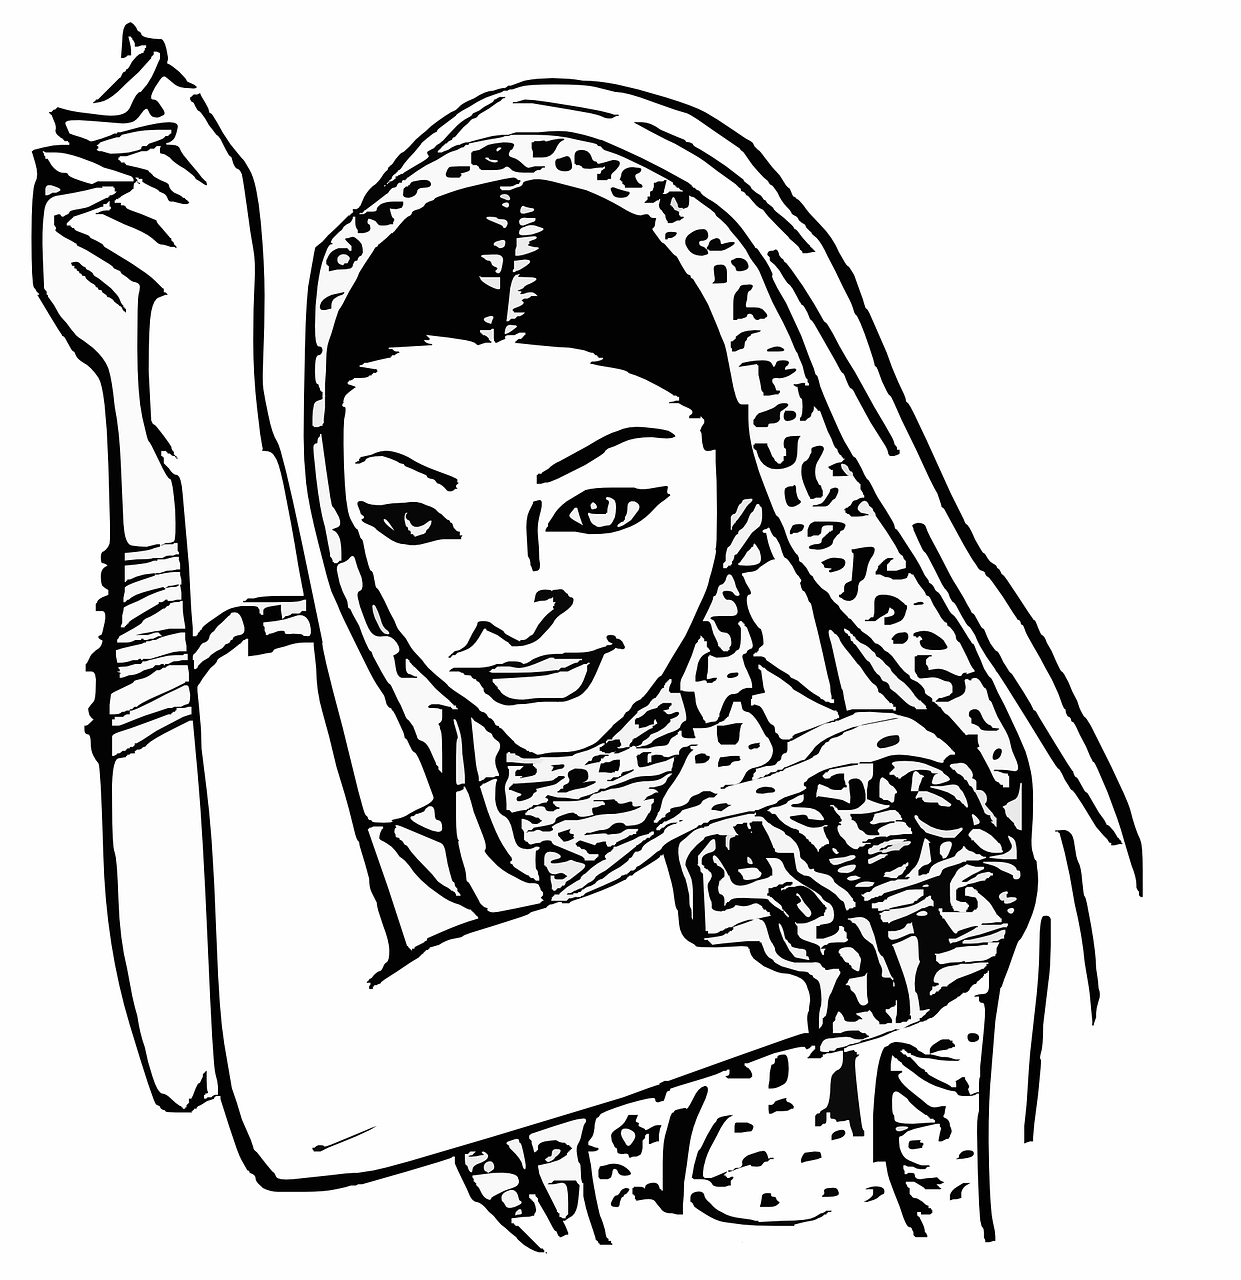 Indian Female Woman - Free vector graphic on Pixabay